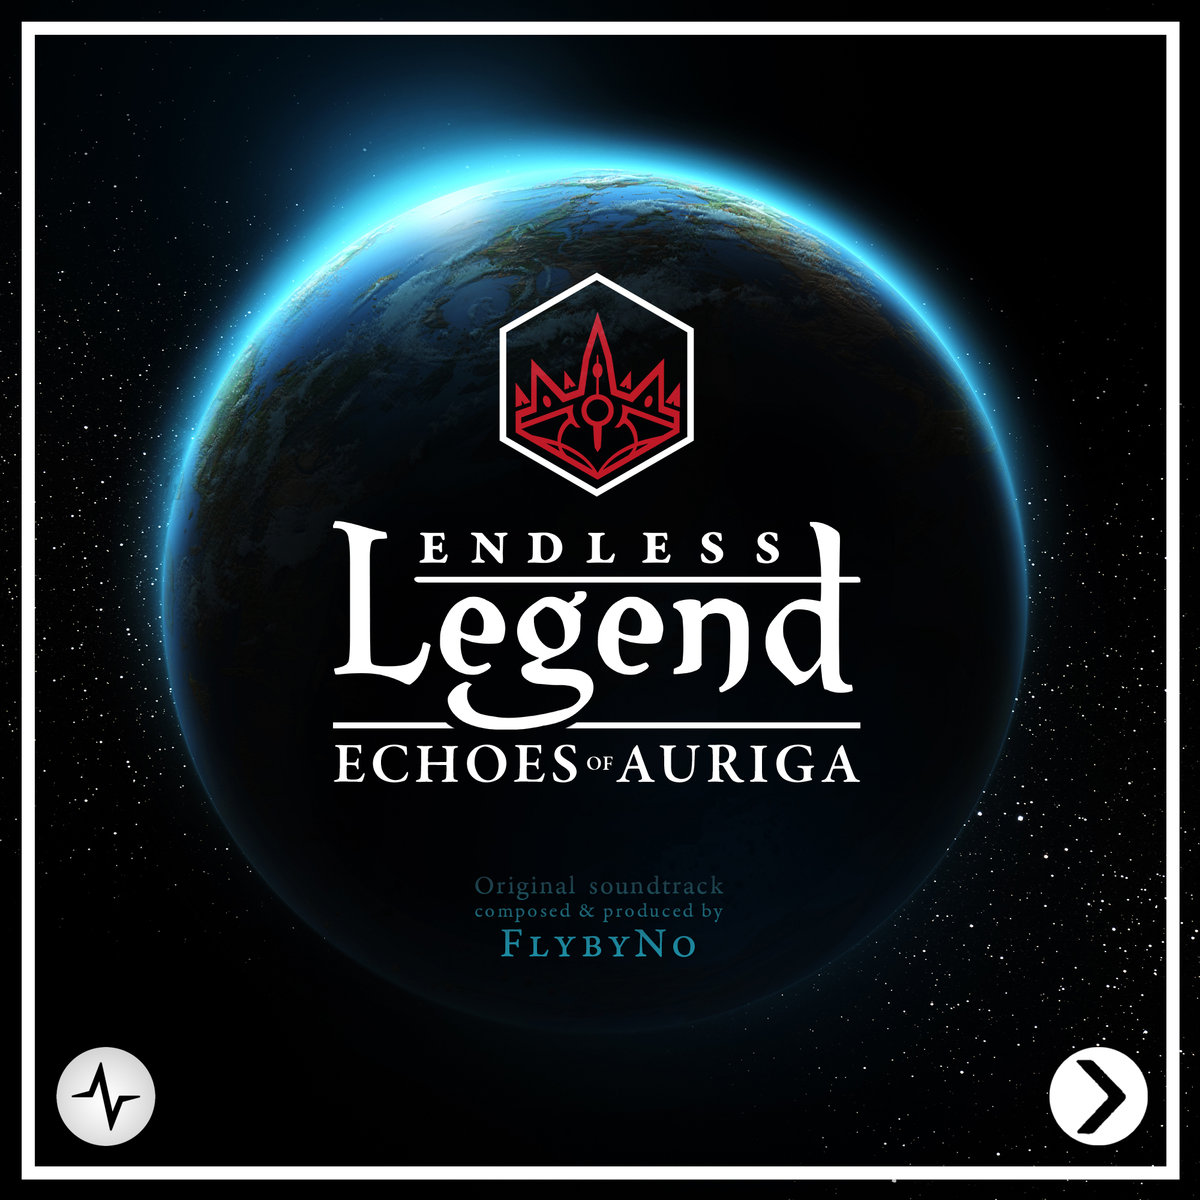 Endless Legend: Echoes of Auriga Original Soundtrack